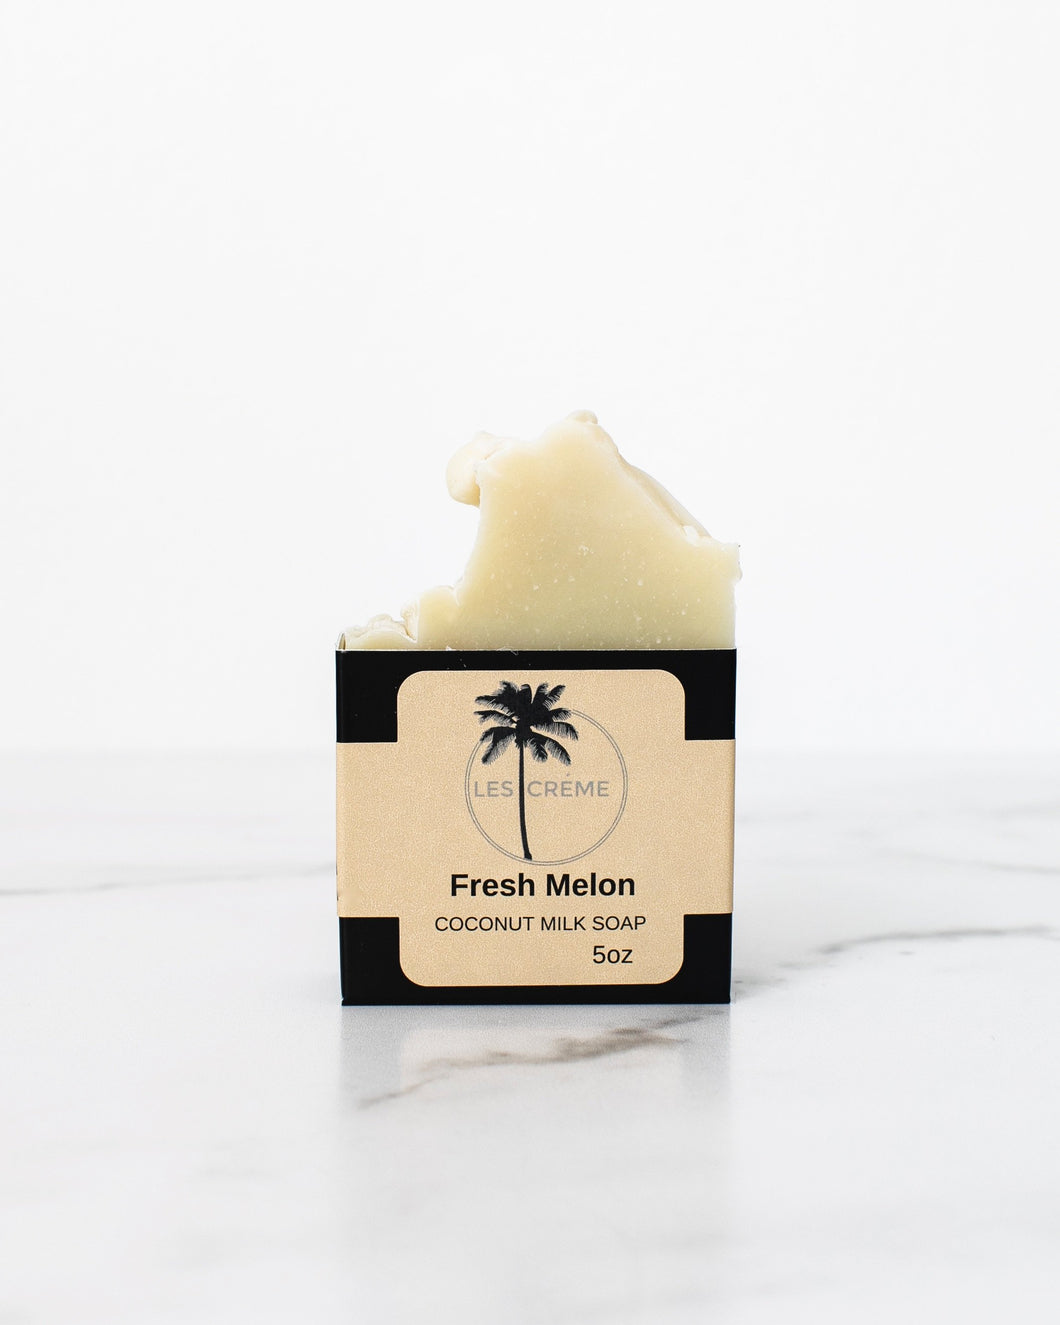 Fresh Melon Coconut Milk Soap